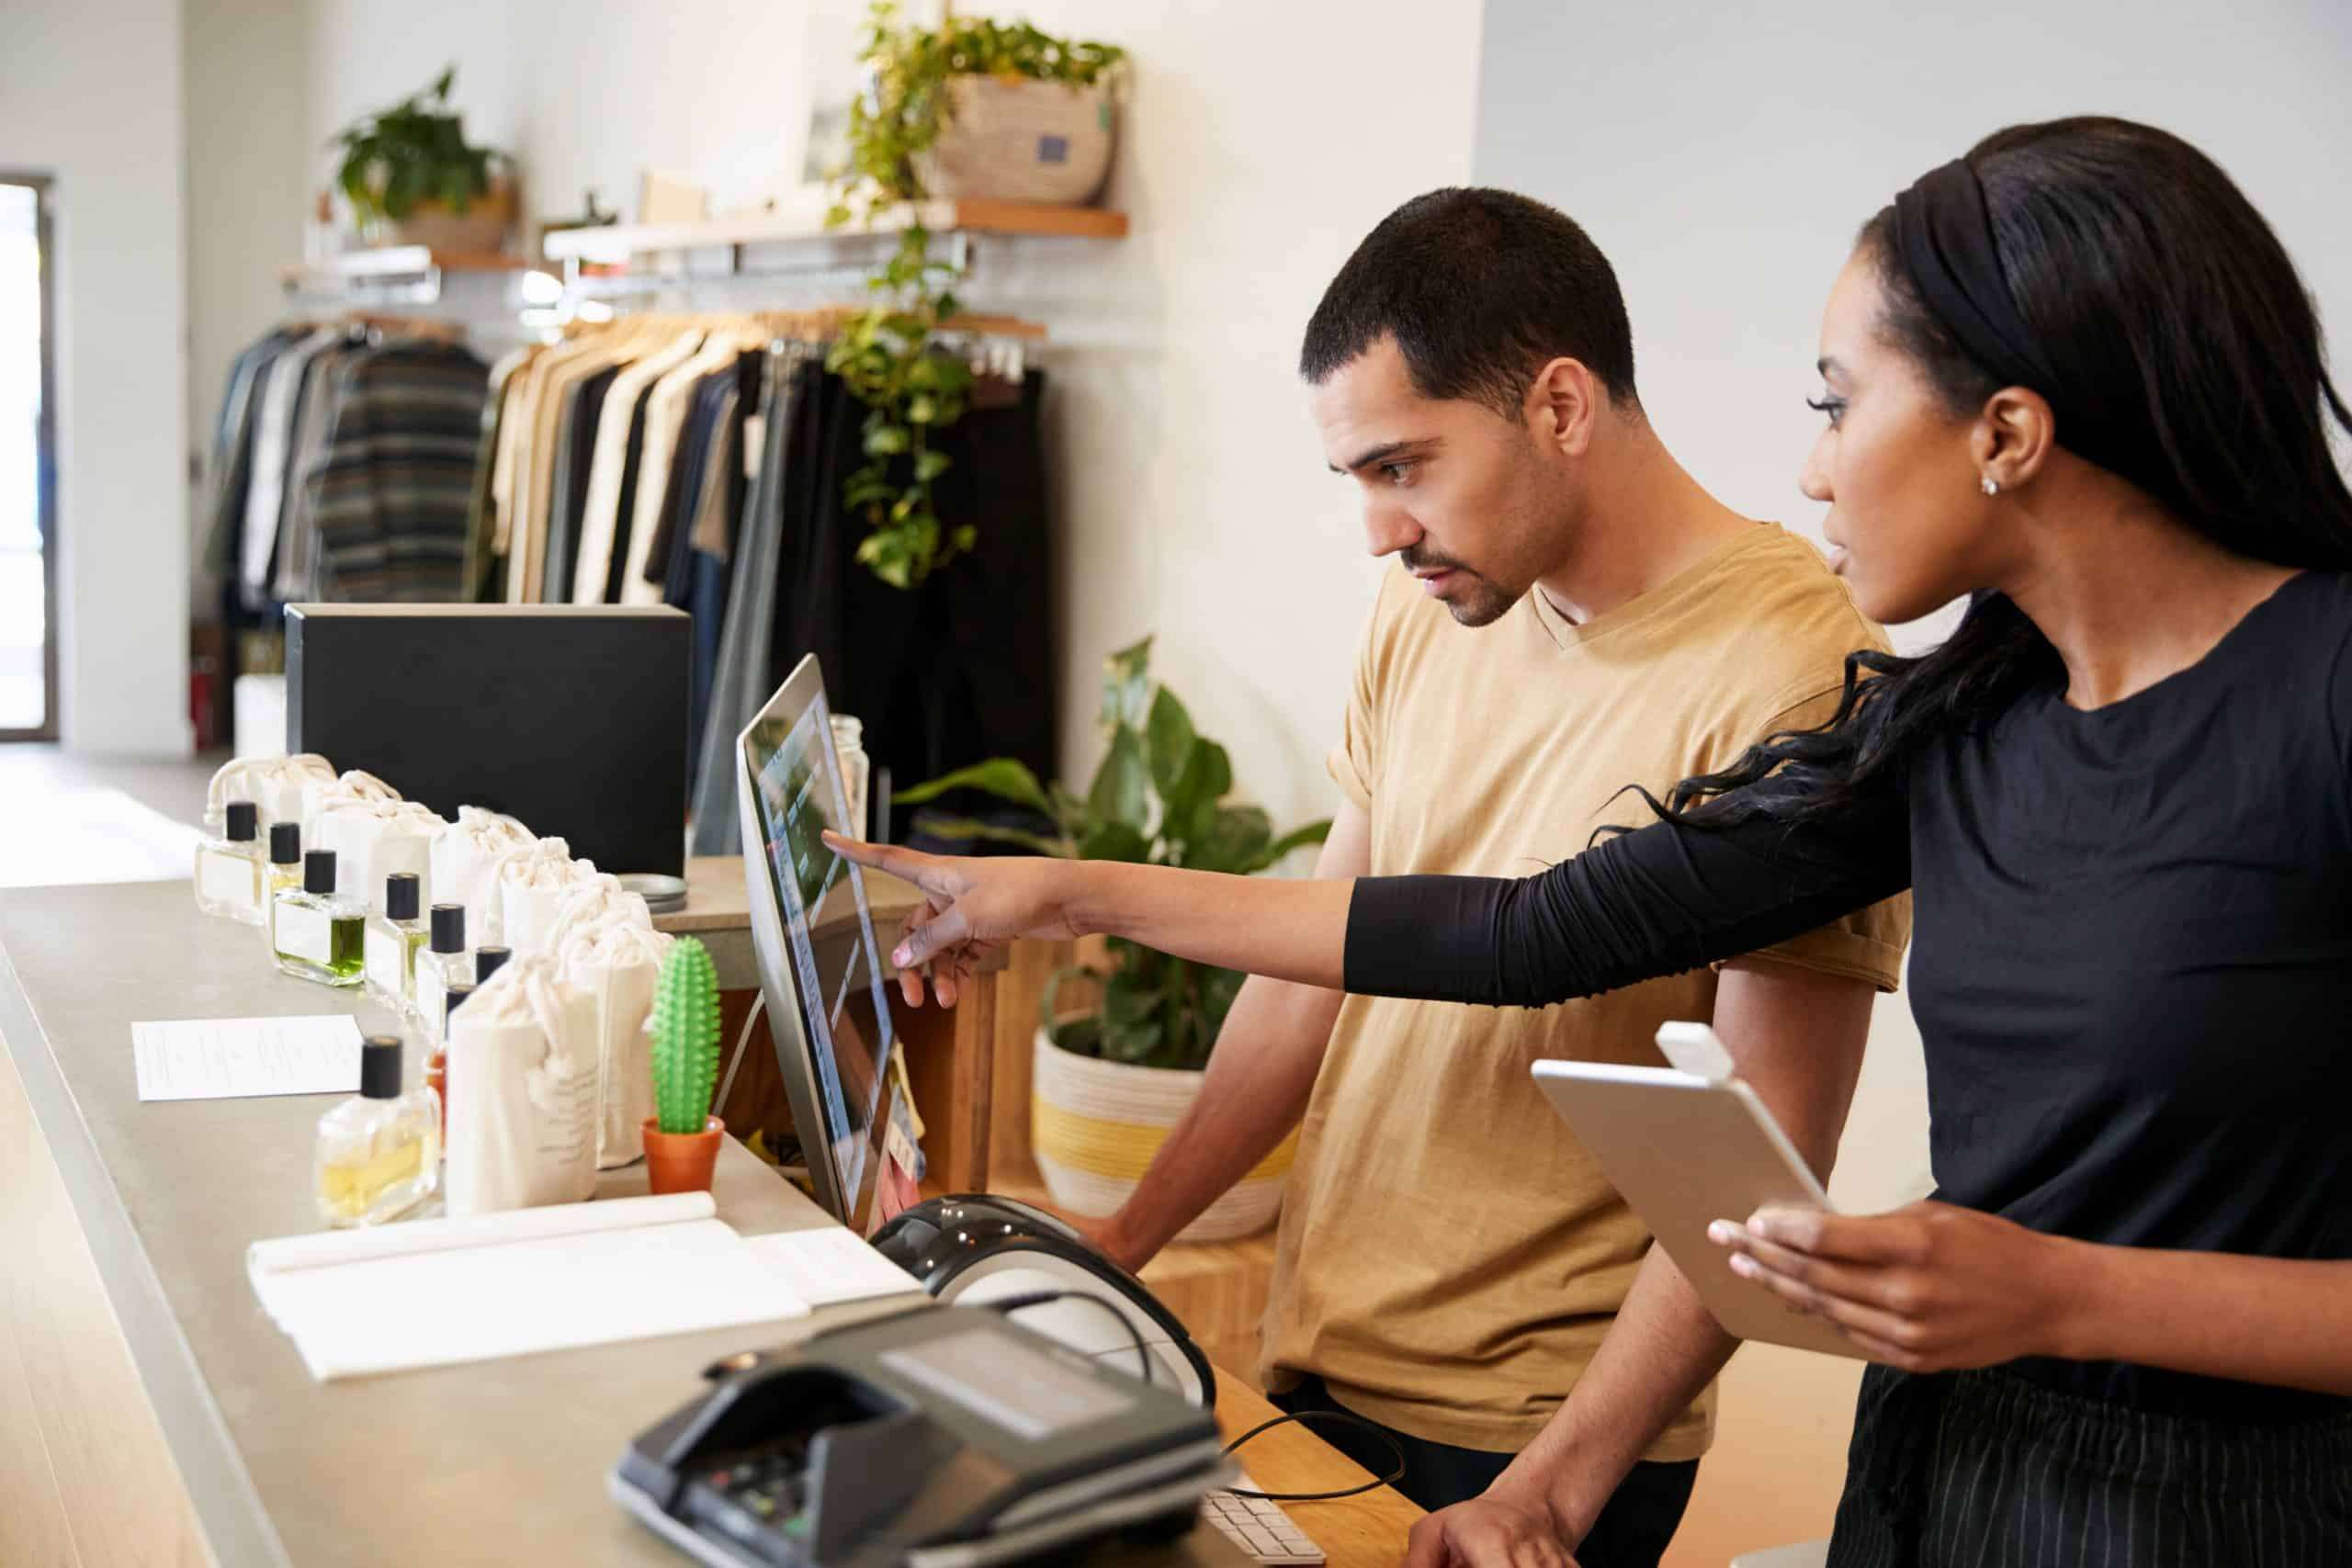 UK retail online sales growth begins to normalise despite reimposed restrictions